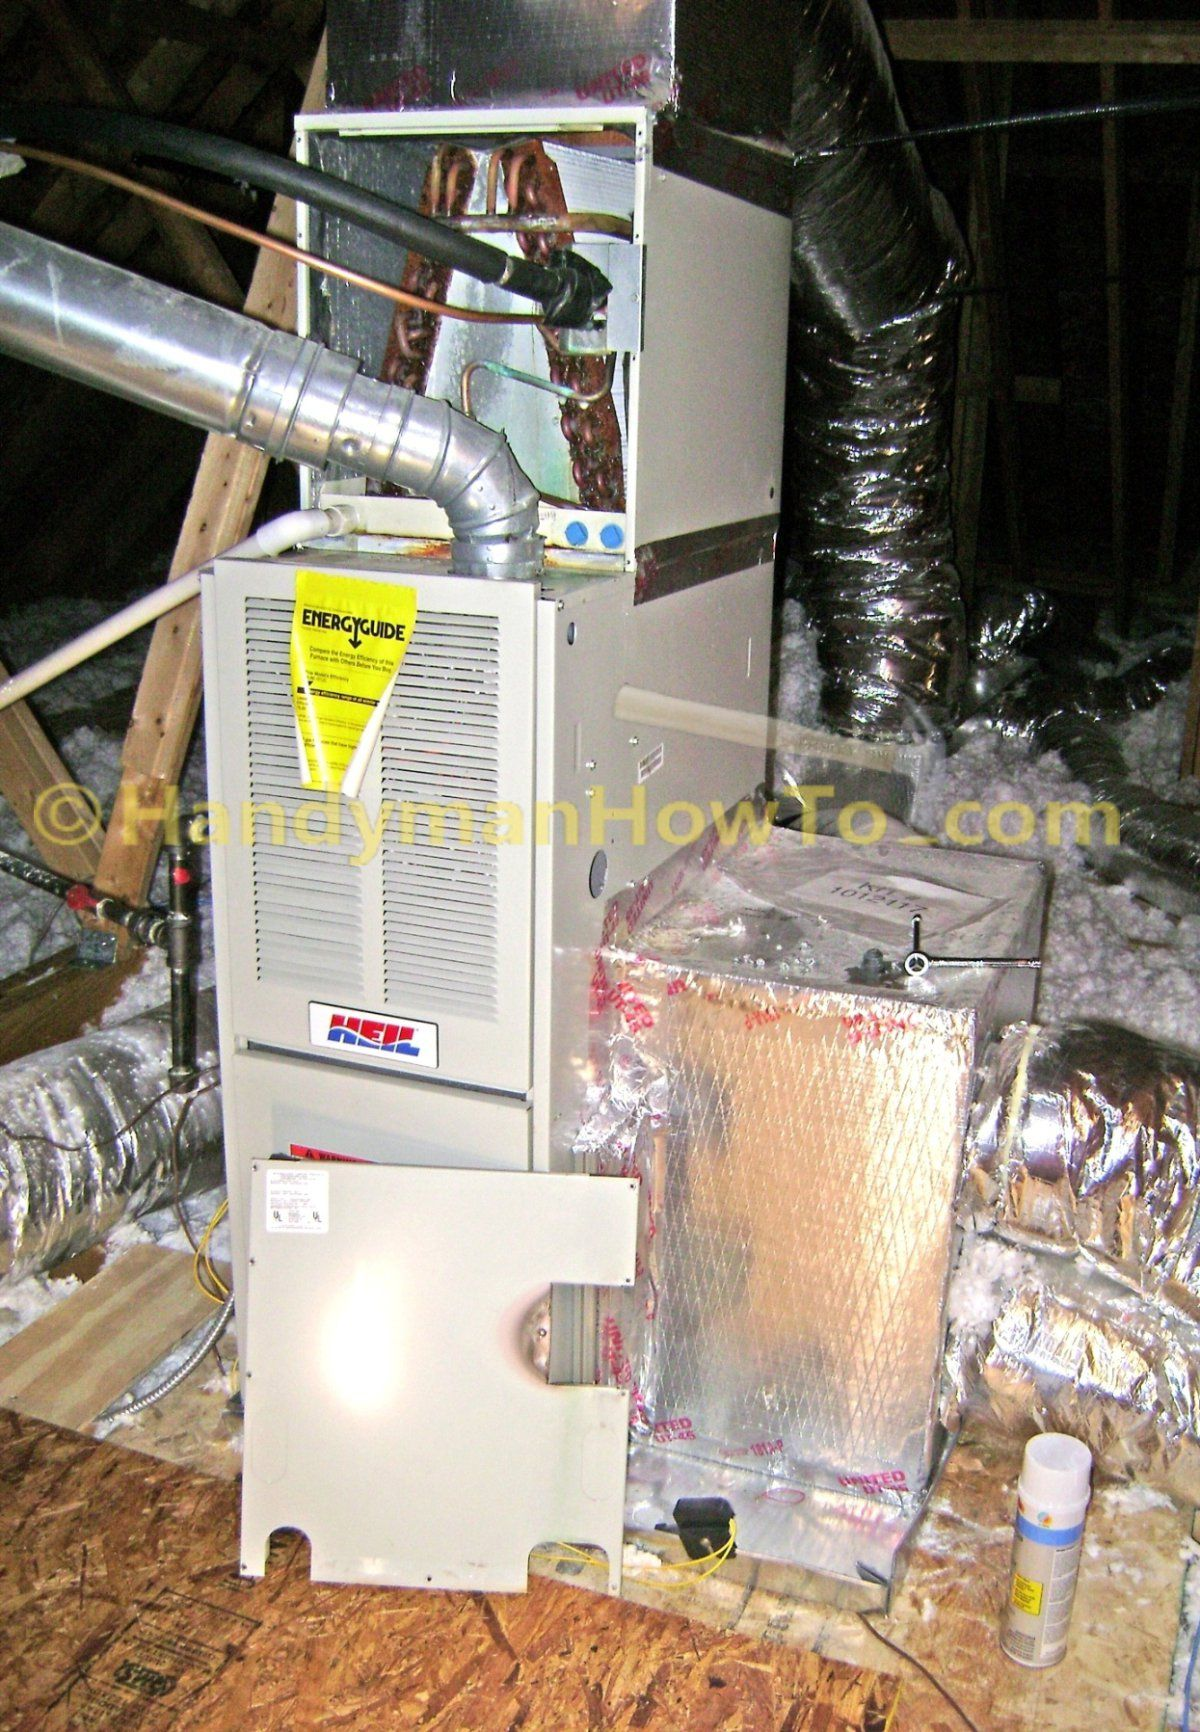 Ac evaporator coil cleaning access panel clean air